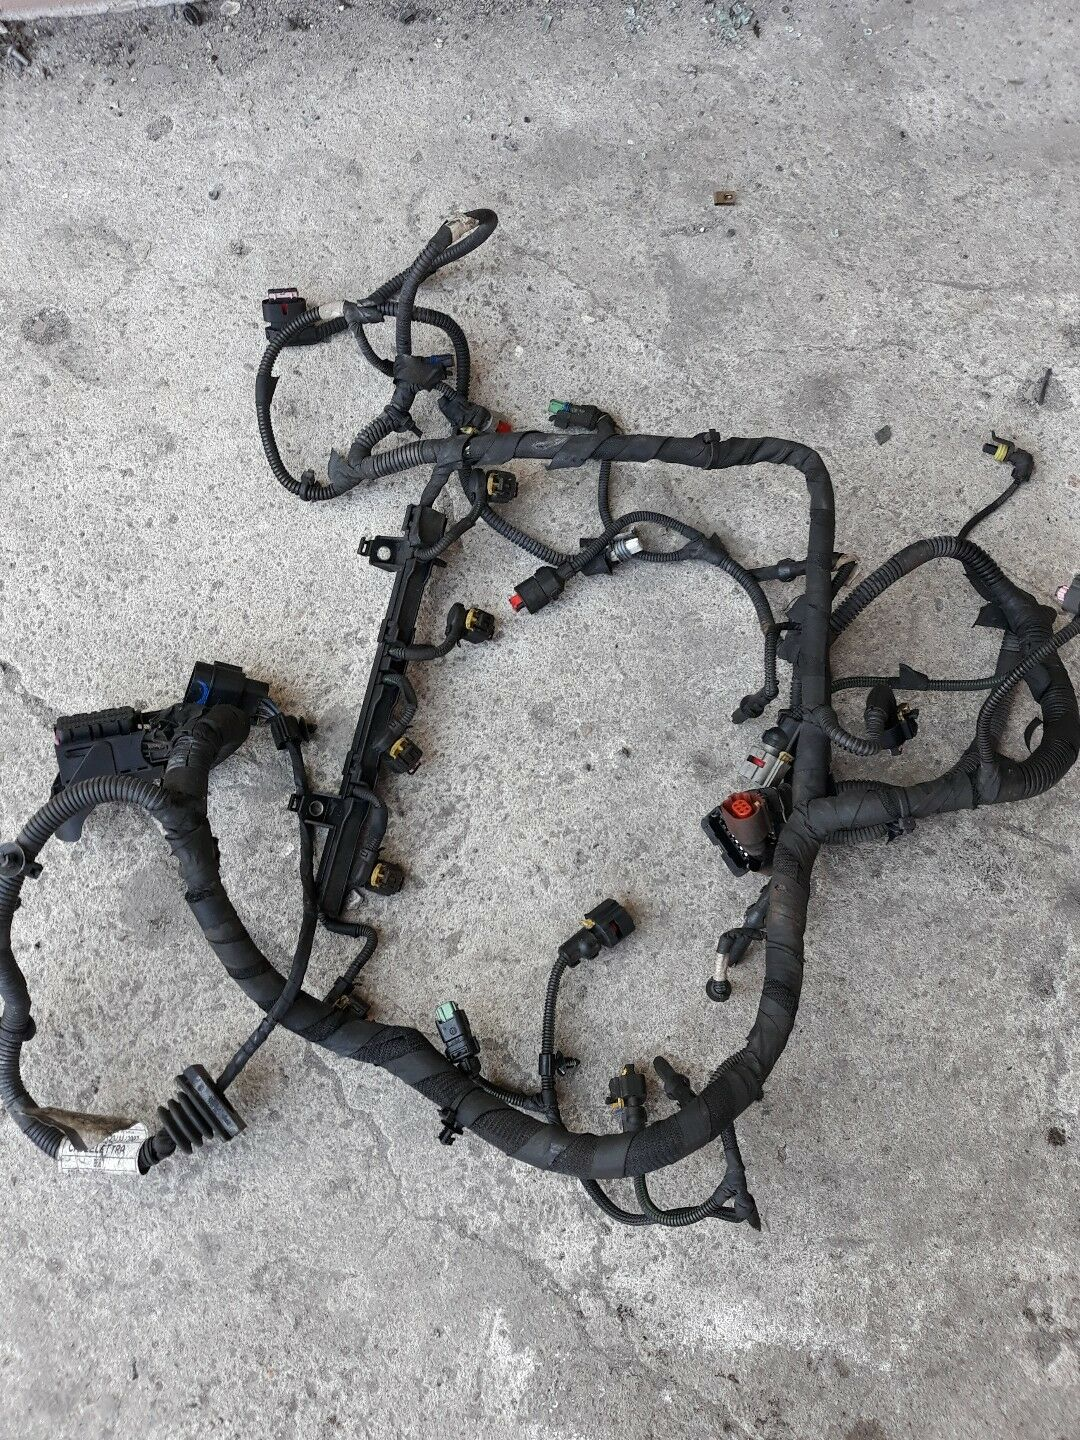 Alfa Romeo 159 24l Jtdm Diesel Engine Wiring Loom Harness Rhd Used Spider Dash Parts For Sale 552082930 1 Of 2 See More